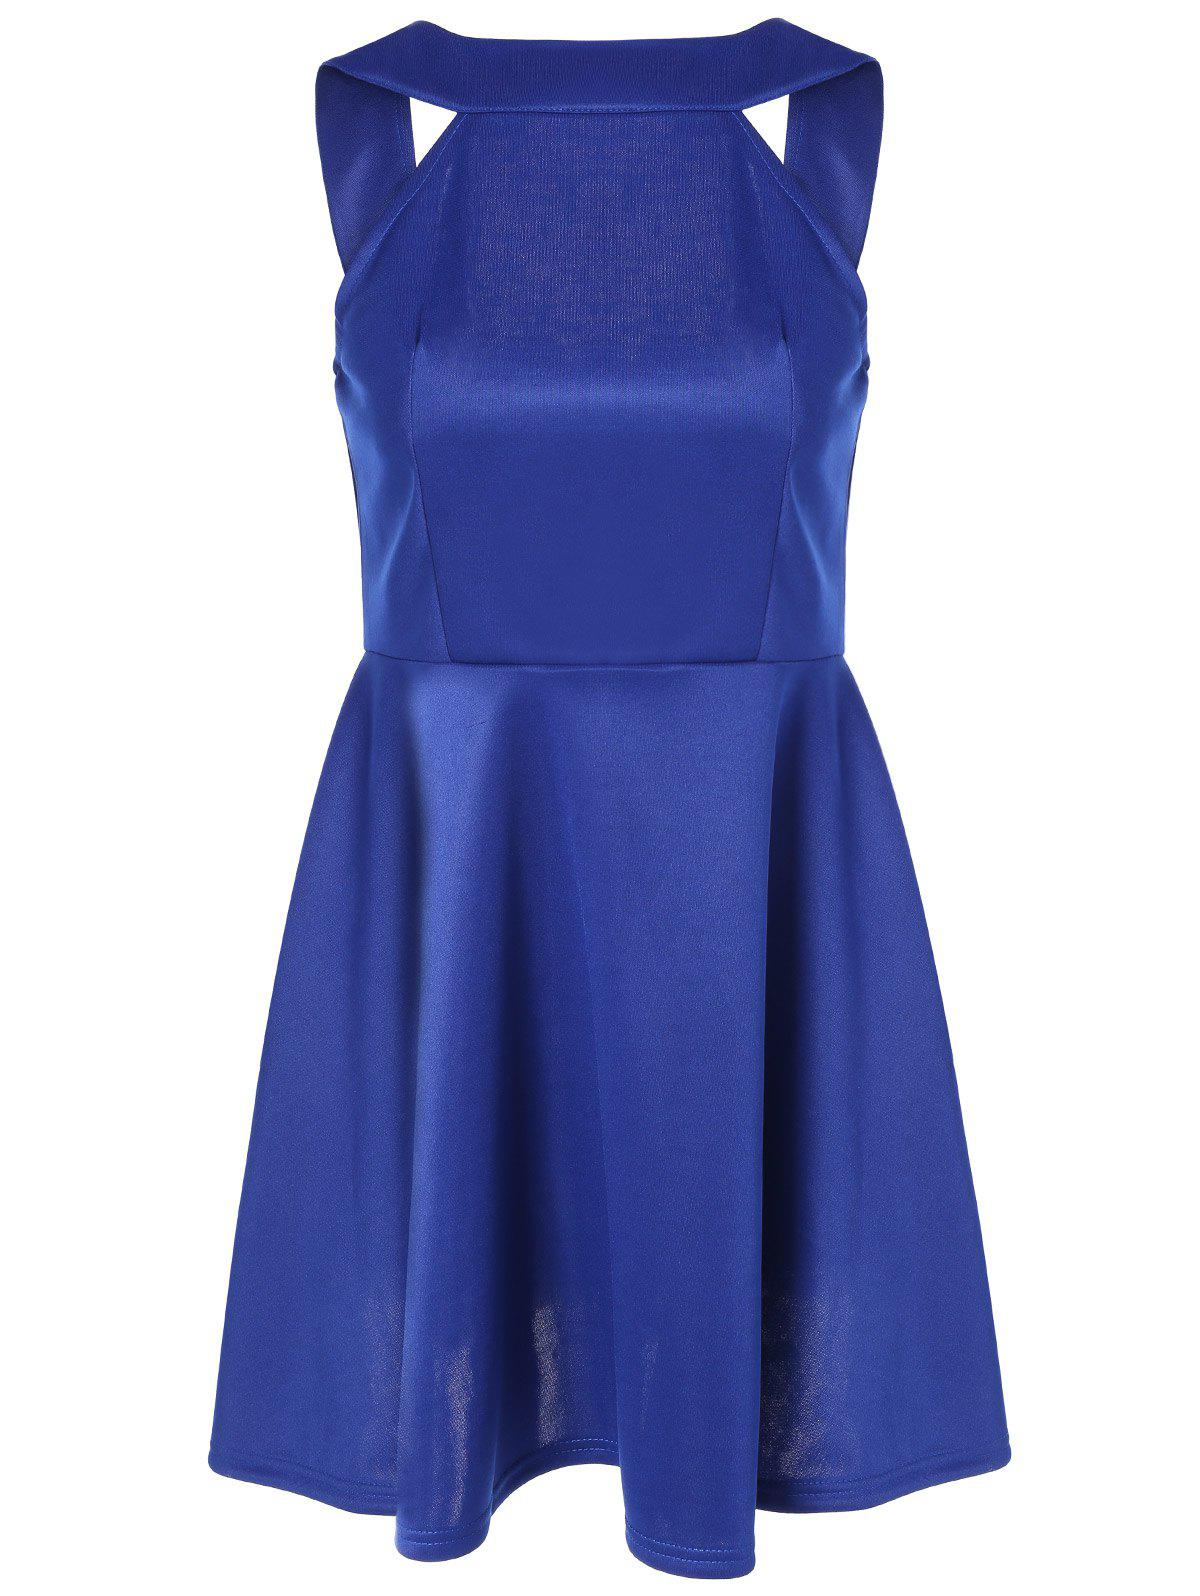 Sleeveless Backless Fit and Flare Dress